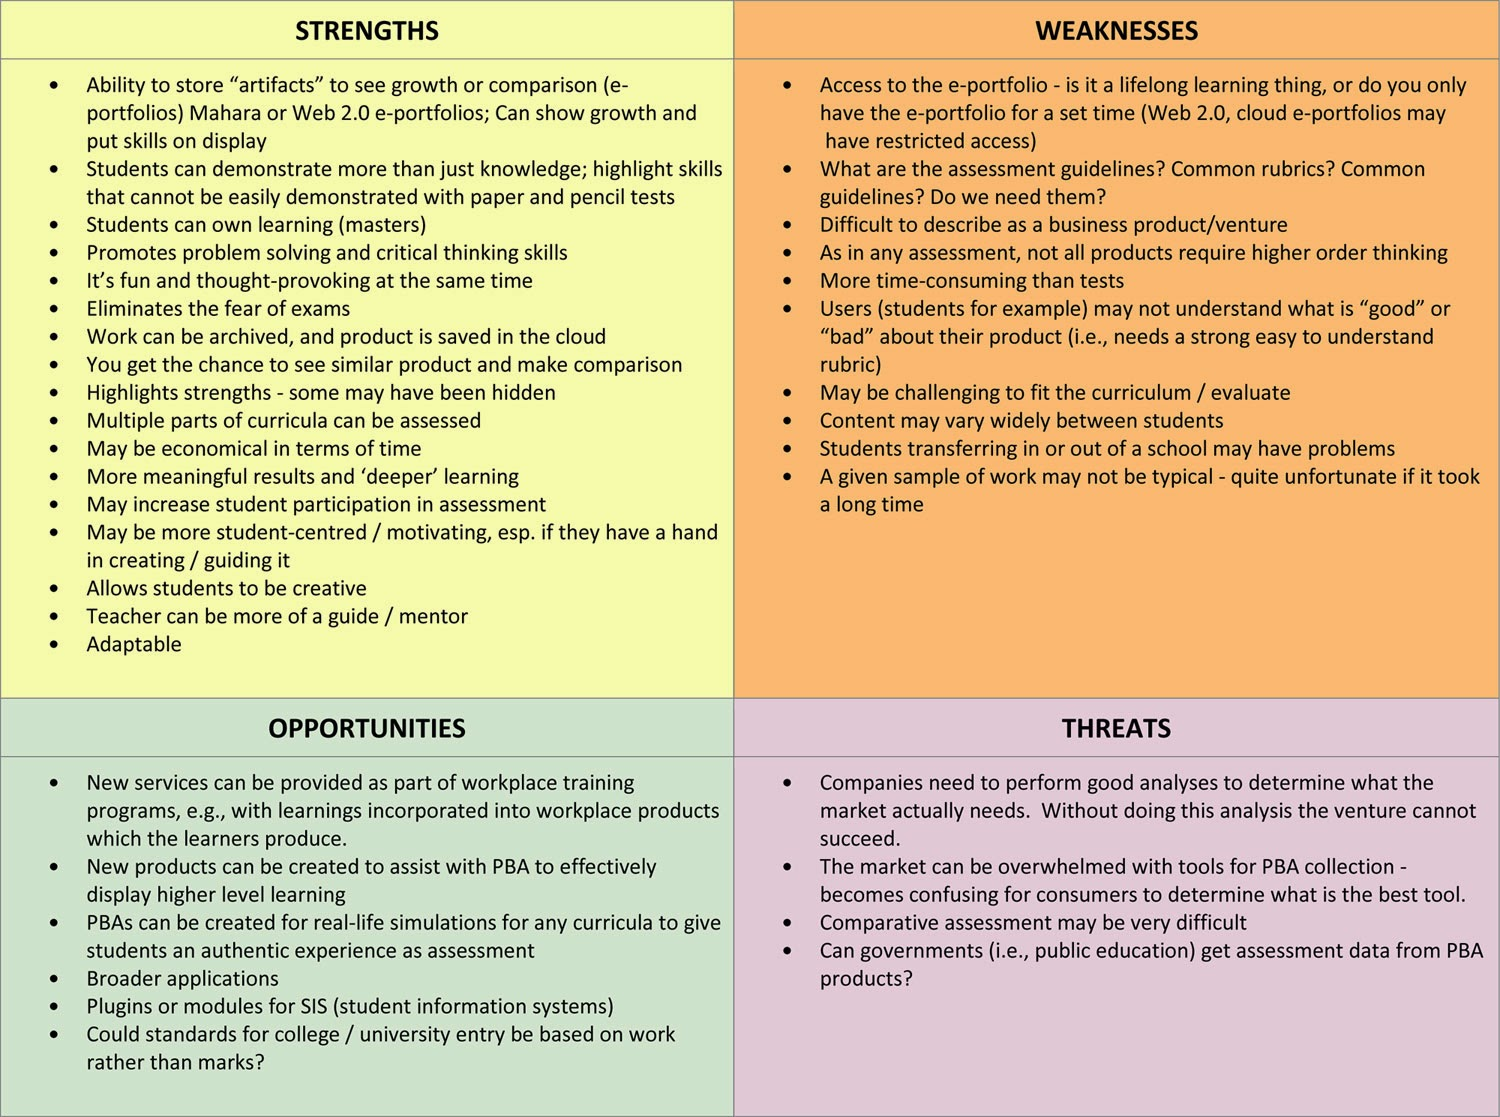 swot analysis examples With these swot analysis examples, you can easily understand how you can use this to analyze a business situation in a comprehensive way after careful analysis, you can determine whether a new venture have enough positives in its favor to be pursued.